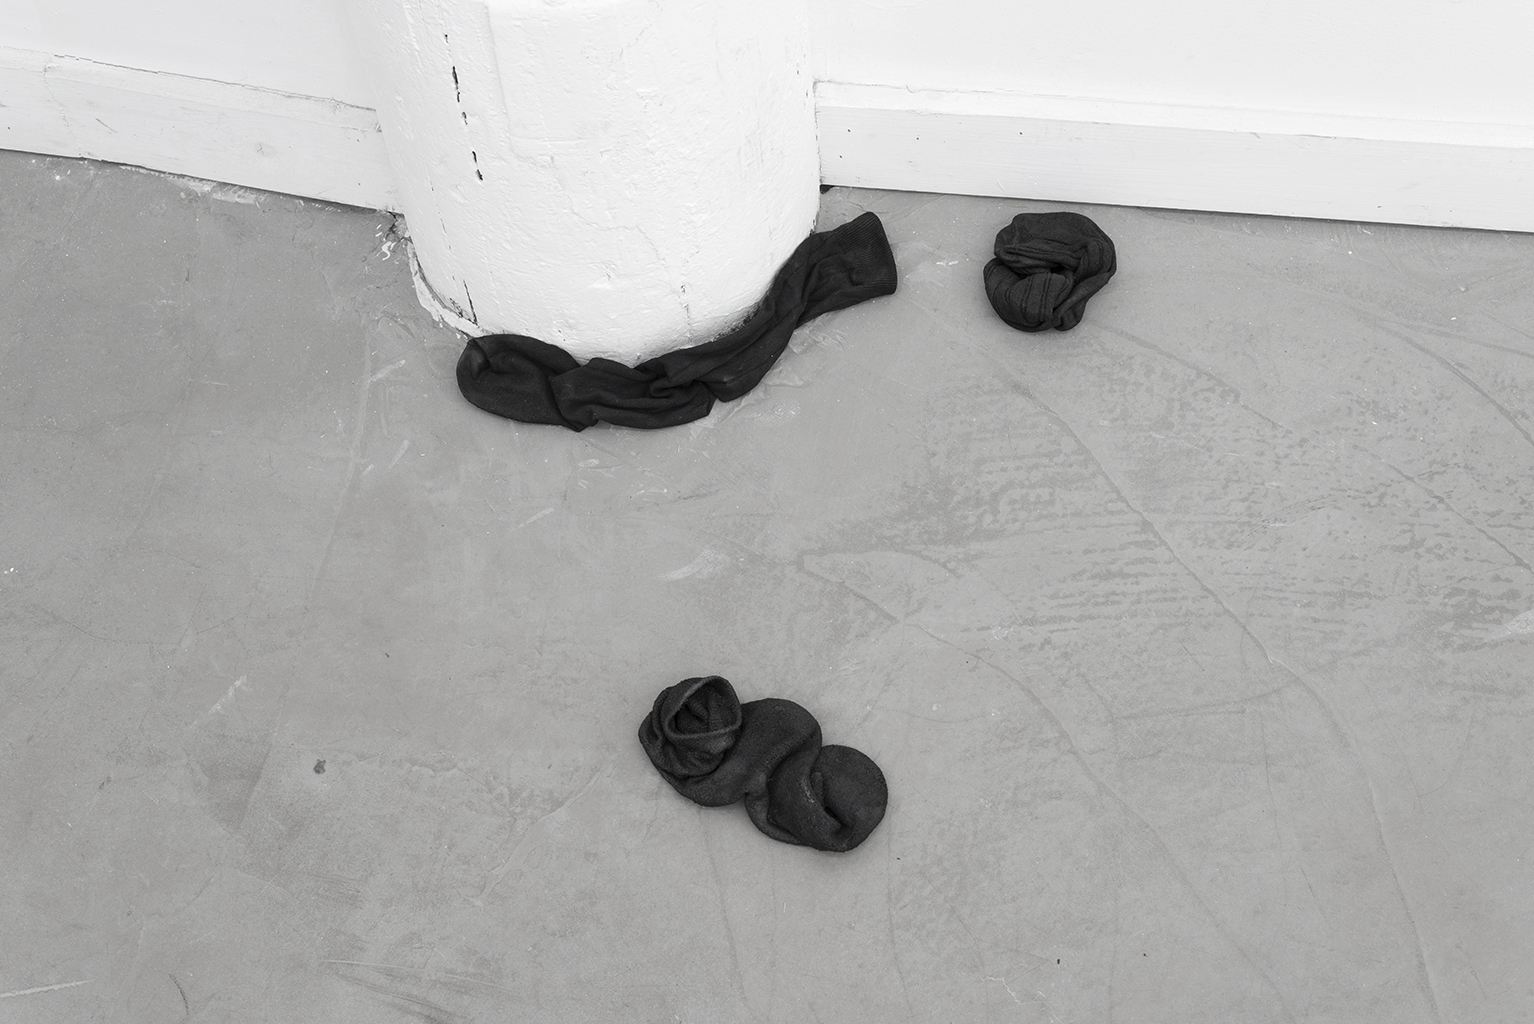 Pile, 2015, gesso, acrylic paint, fabric stiffener,dress socks, dimensions variable